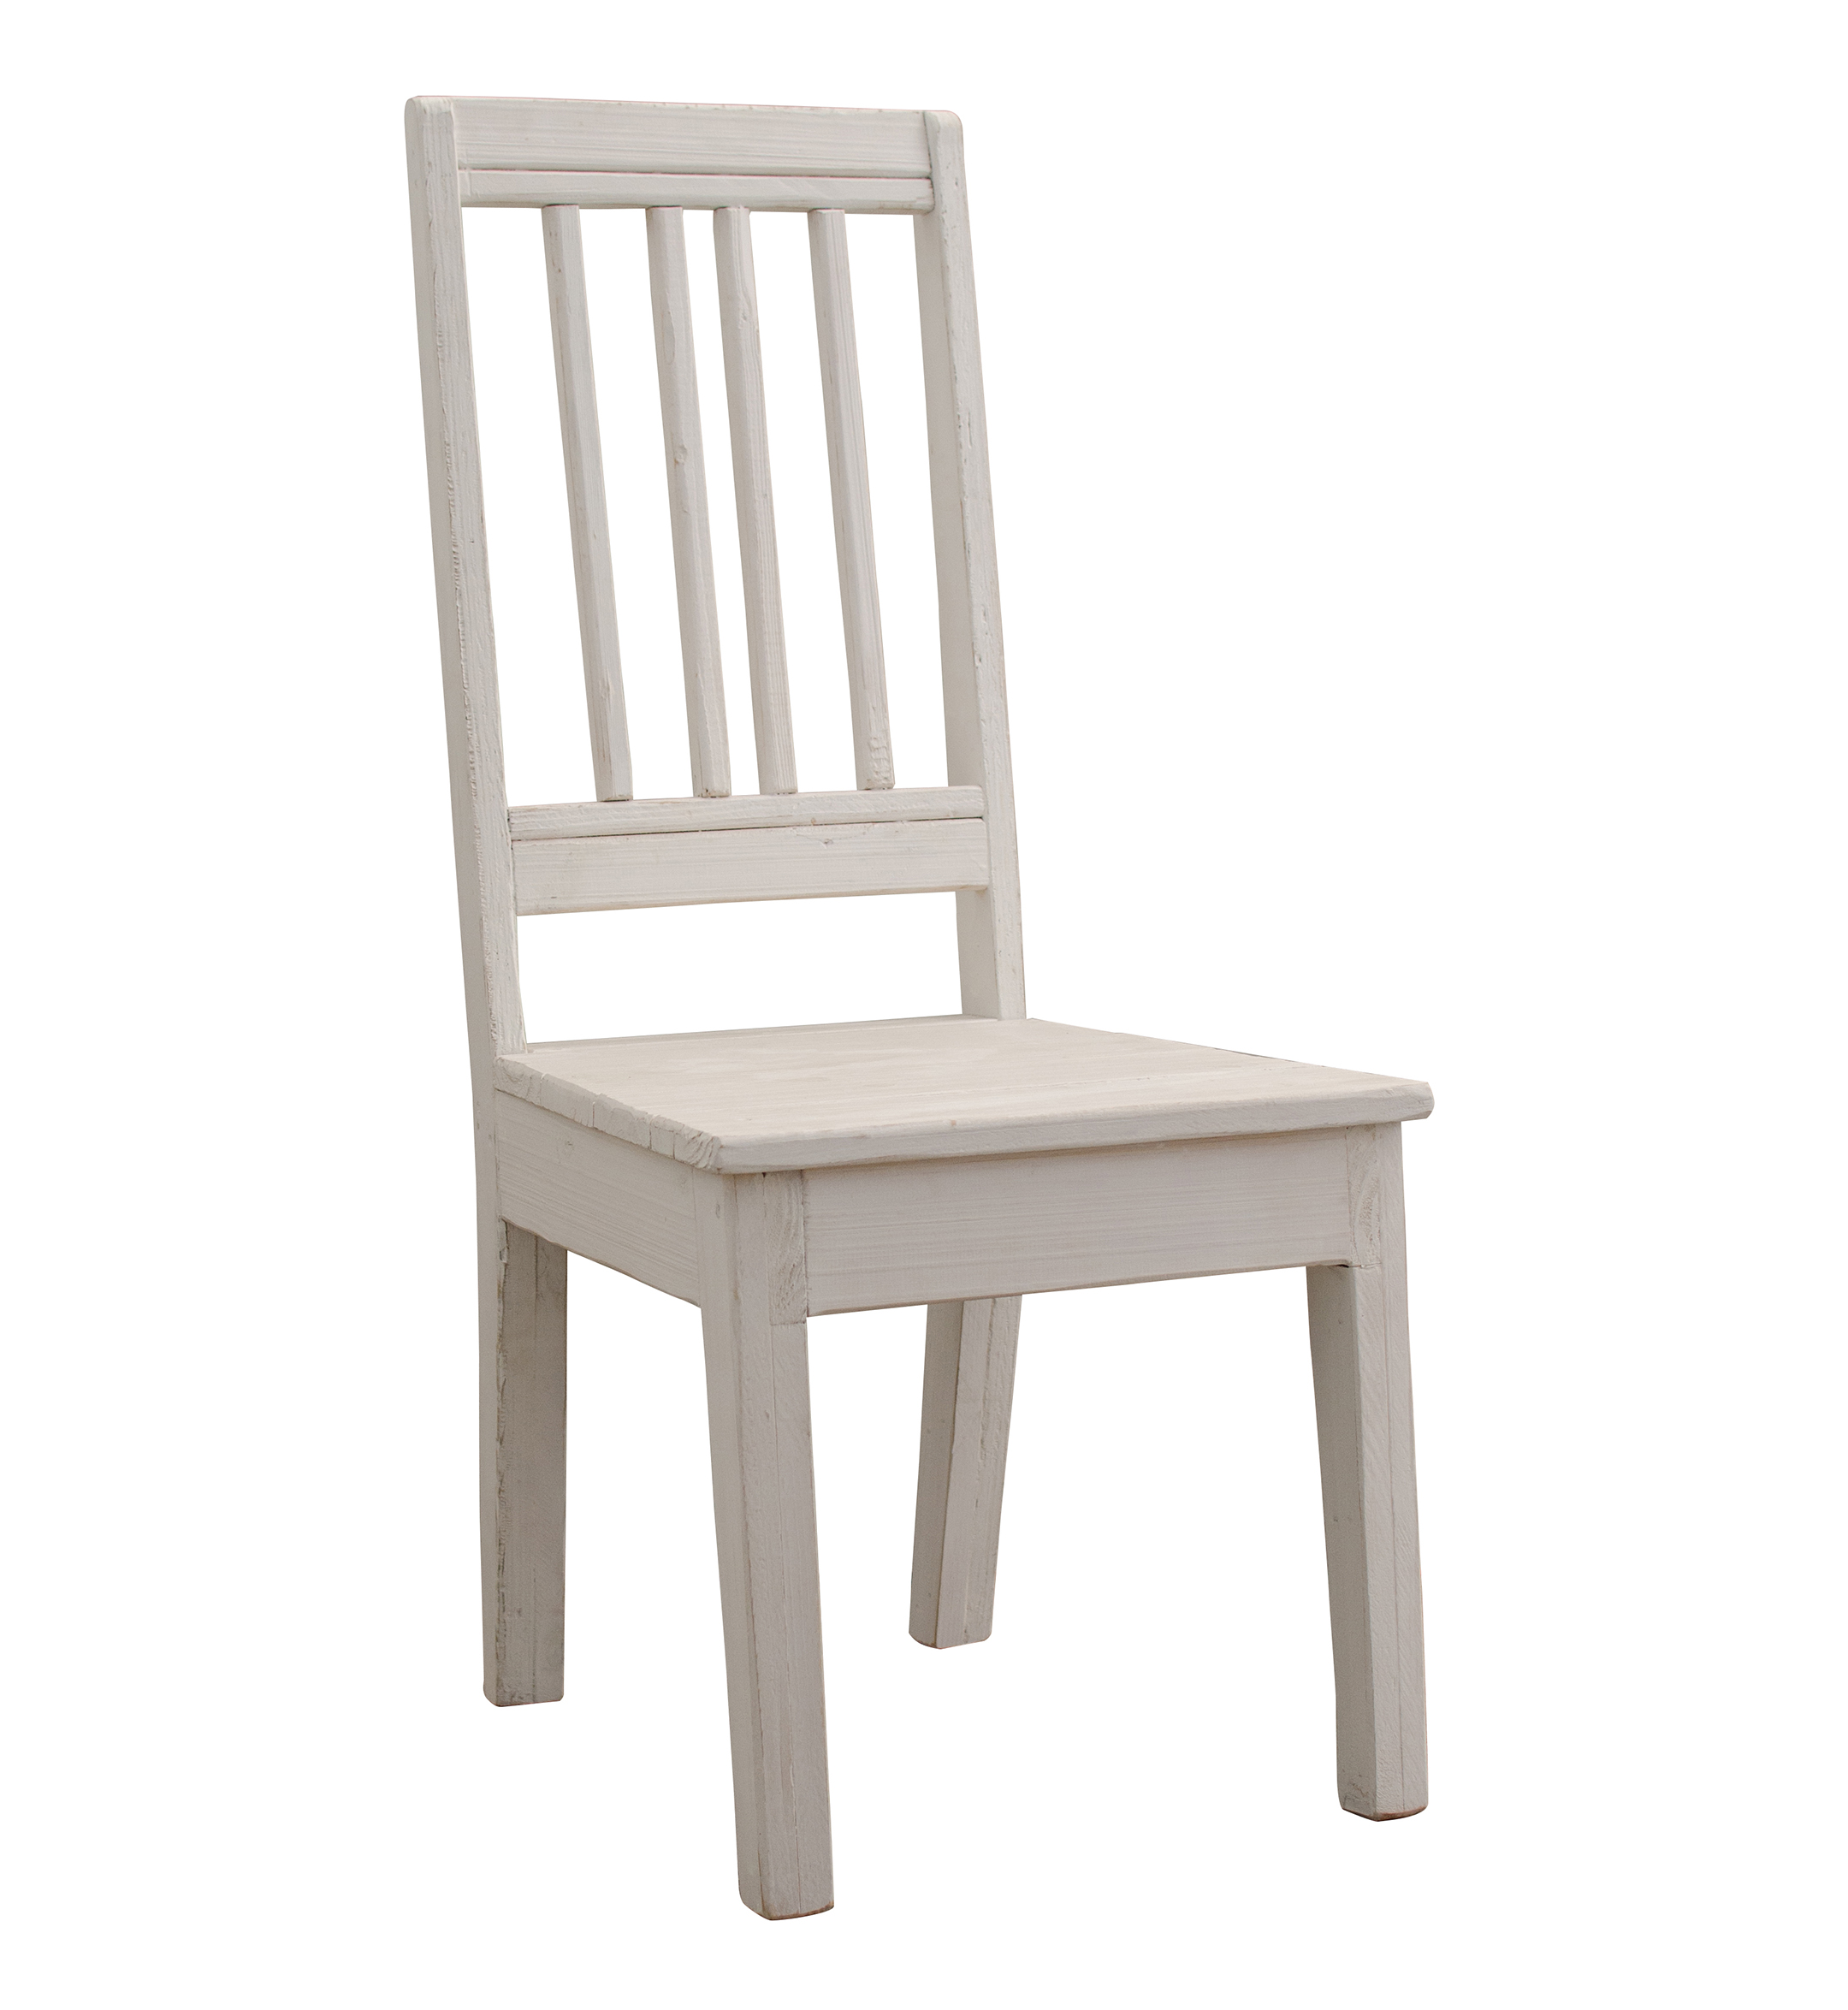 Dining Chair Dimensions Ecomo Dining Chair